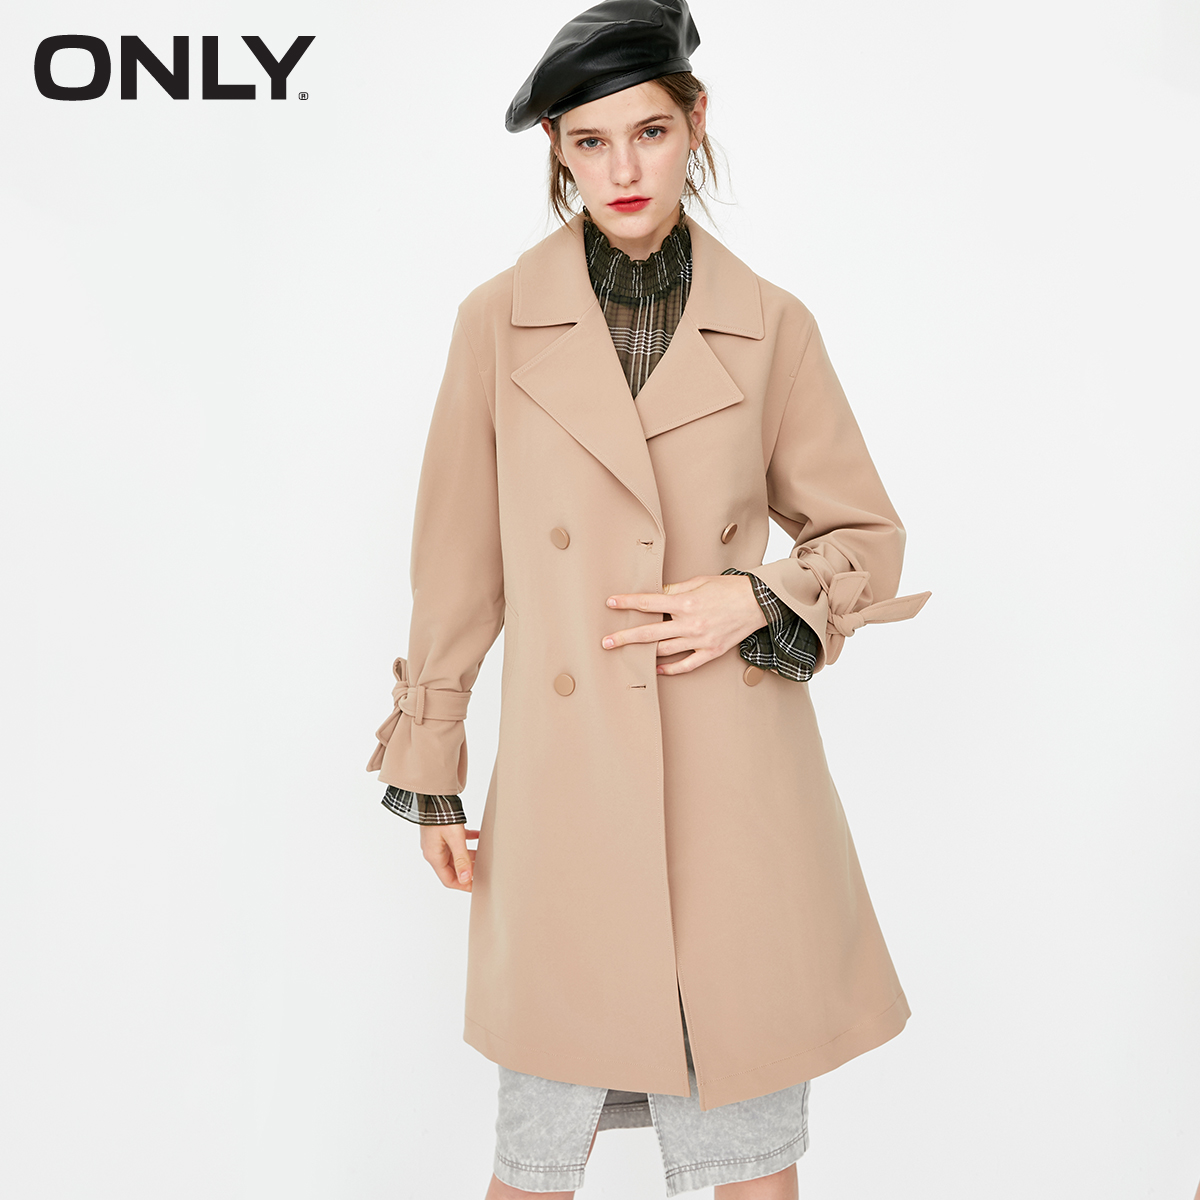 ONLY Spring Summer New Women's Loose Fit Double-breasted Lace-up Wind Coat |118336533